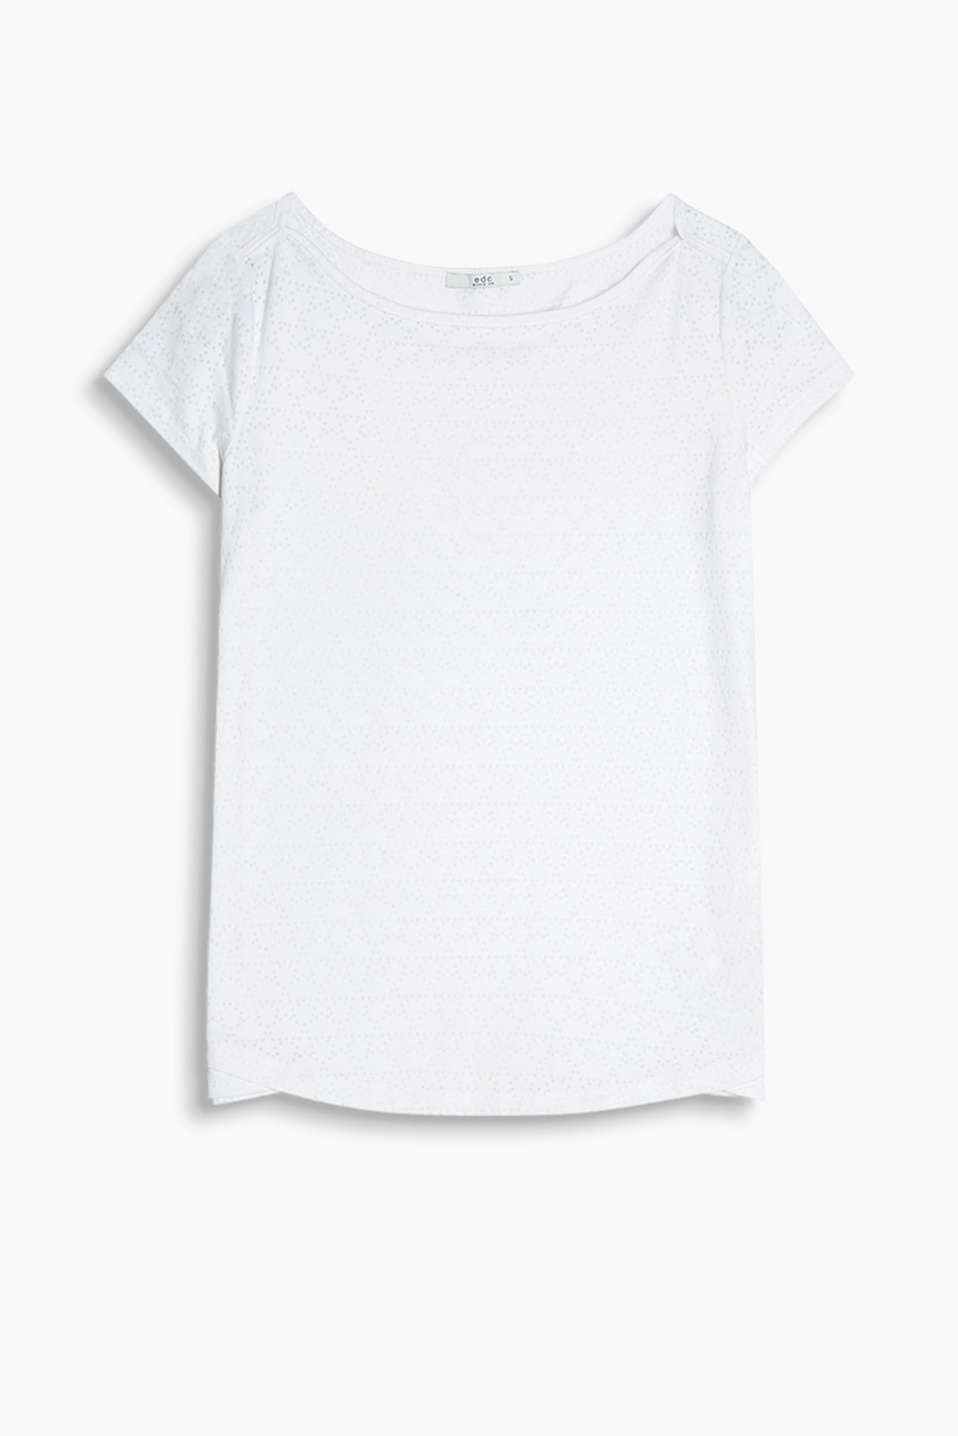 T-shirt with a bateau neckline and a geometric burnt-out pattern